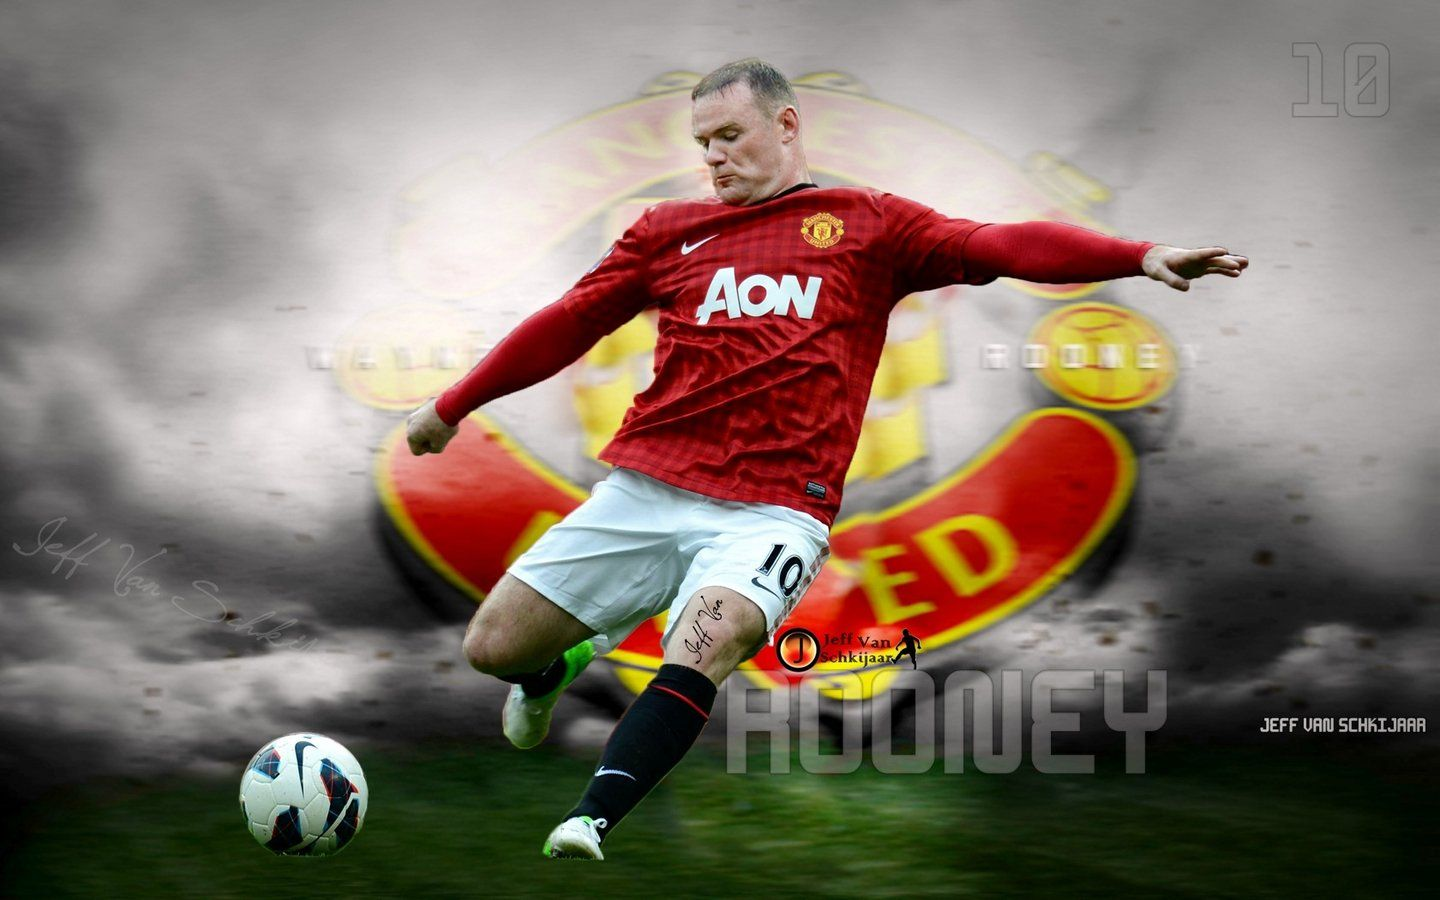 Manchesterunitedwallpapers Org Wayne Rooney Wallpaper Backgrounds Manchester United Images